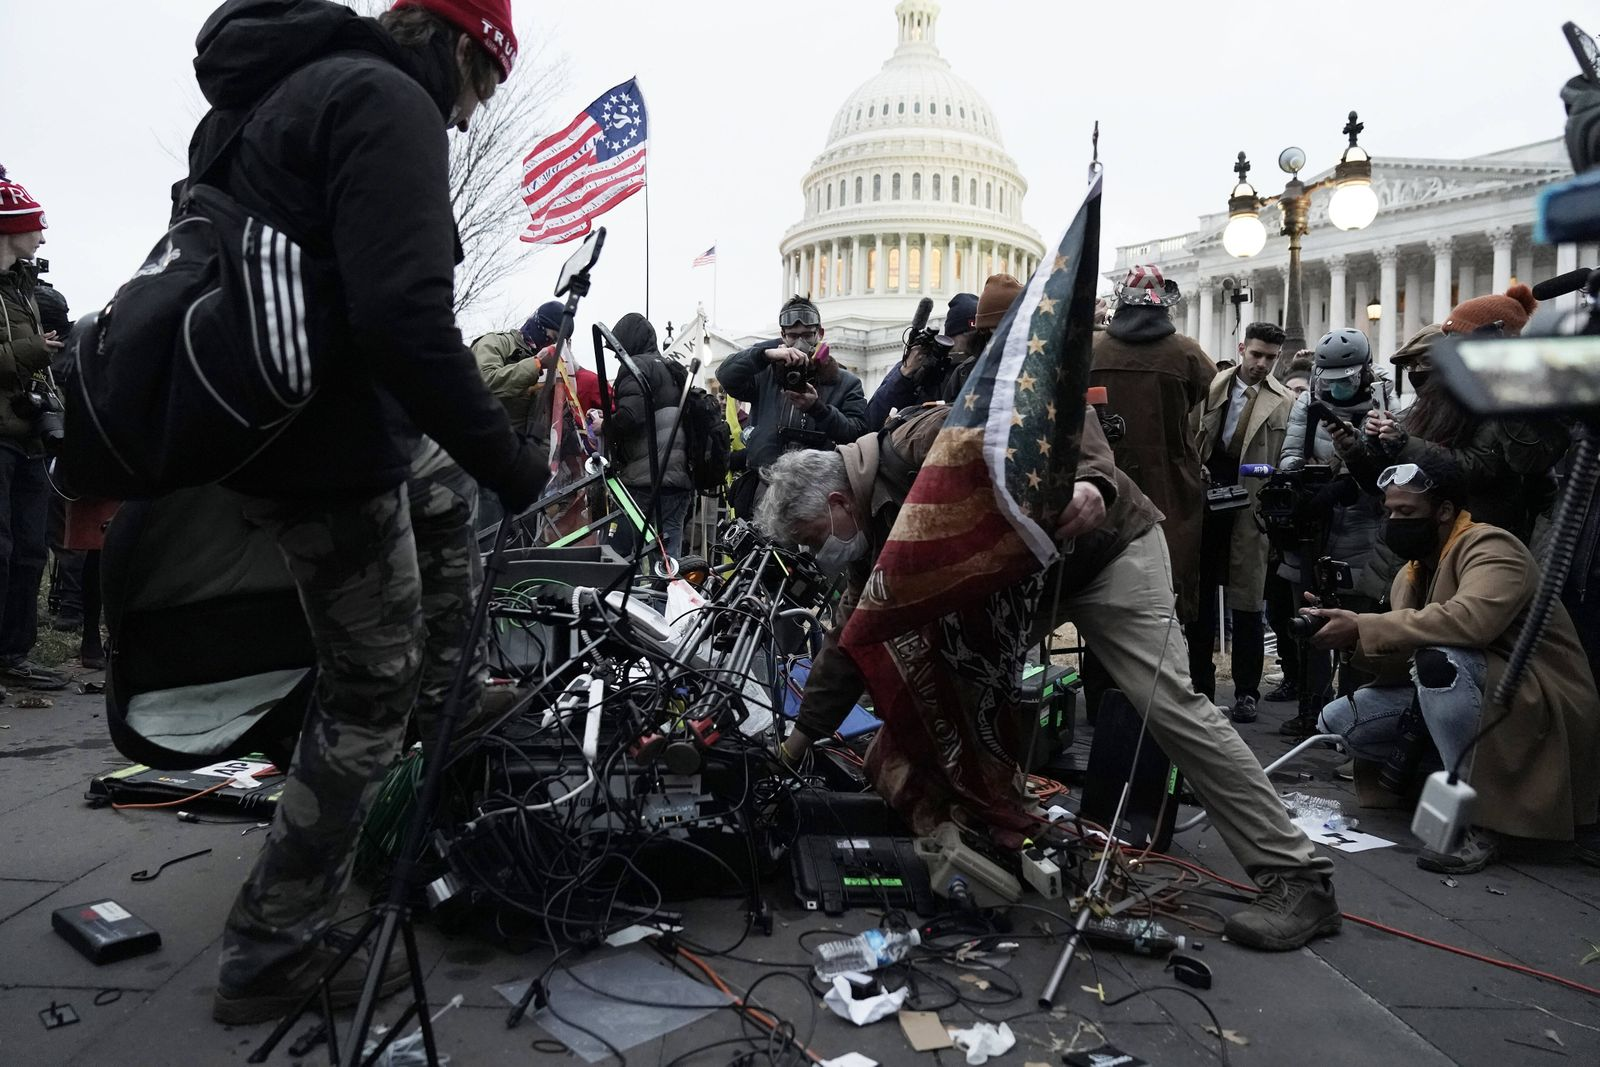 Pro-Trump rioters destroy camera gear and media equipment after breaching the security perimeter and penetrate the U.S.